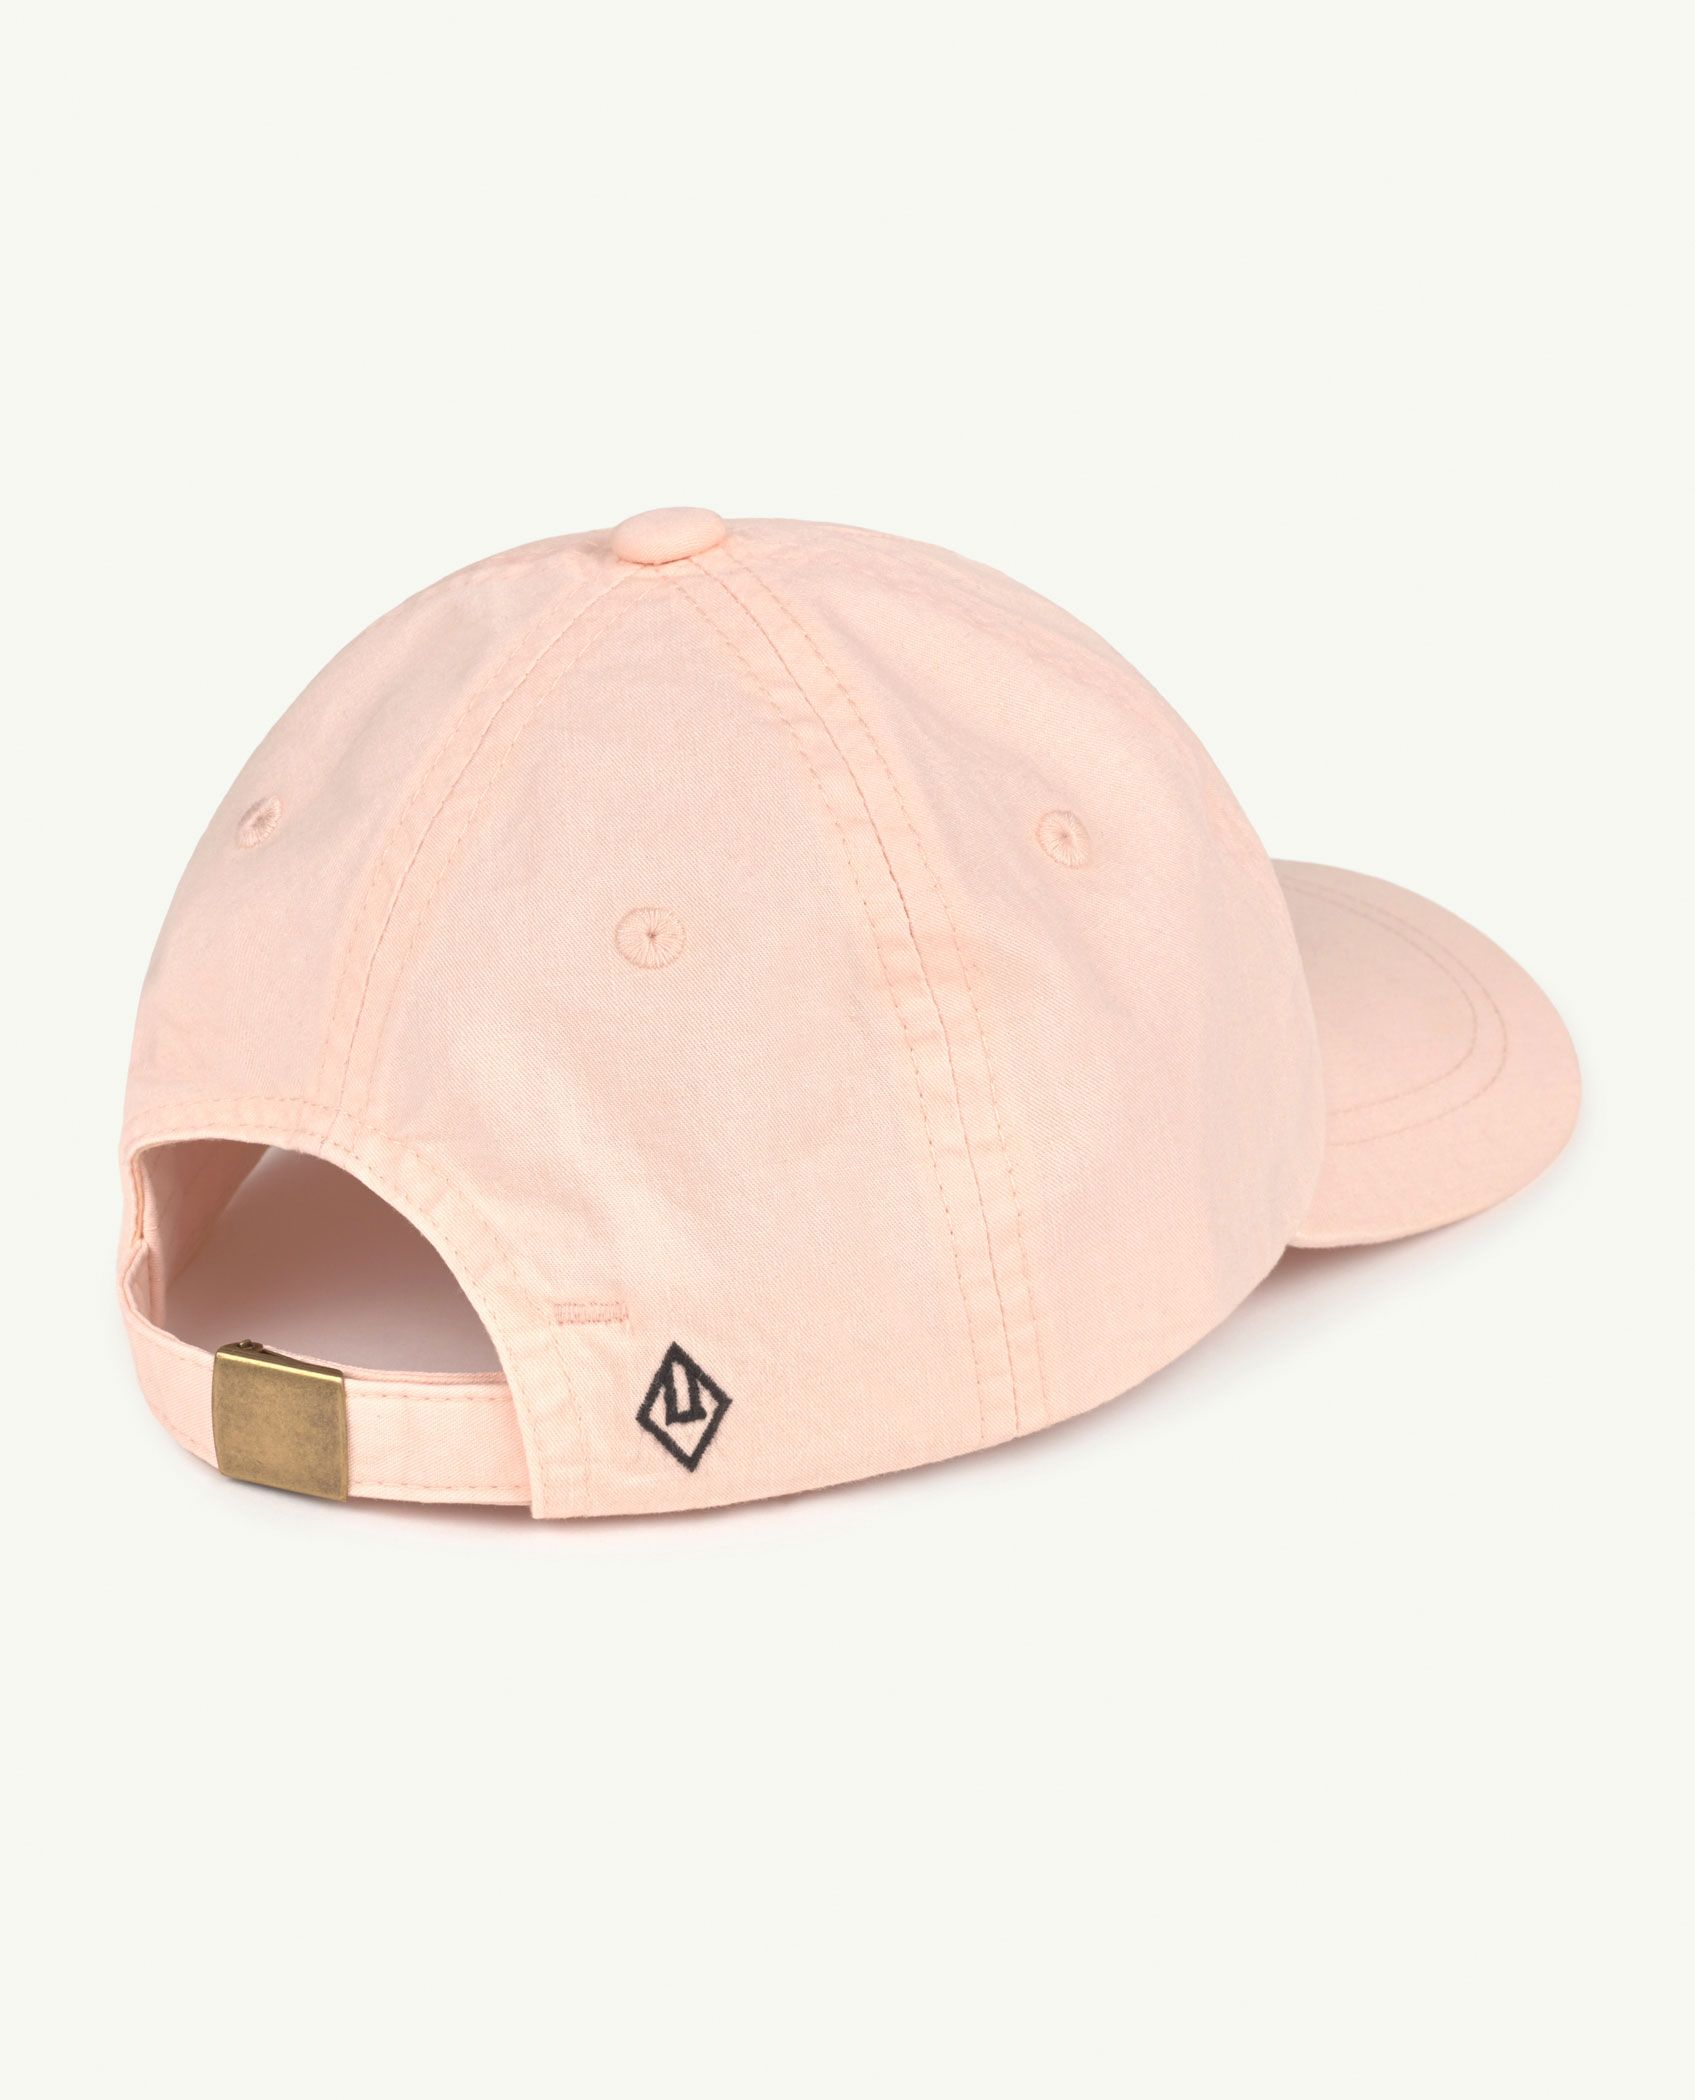 The Animals Observatory x Miniboutique Pink Hamster Hat img-2